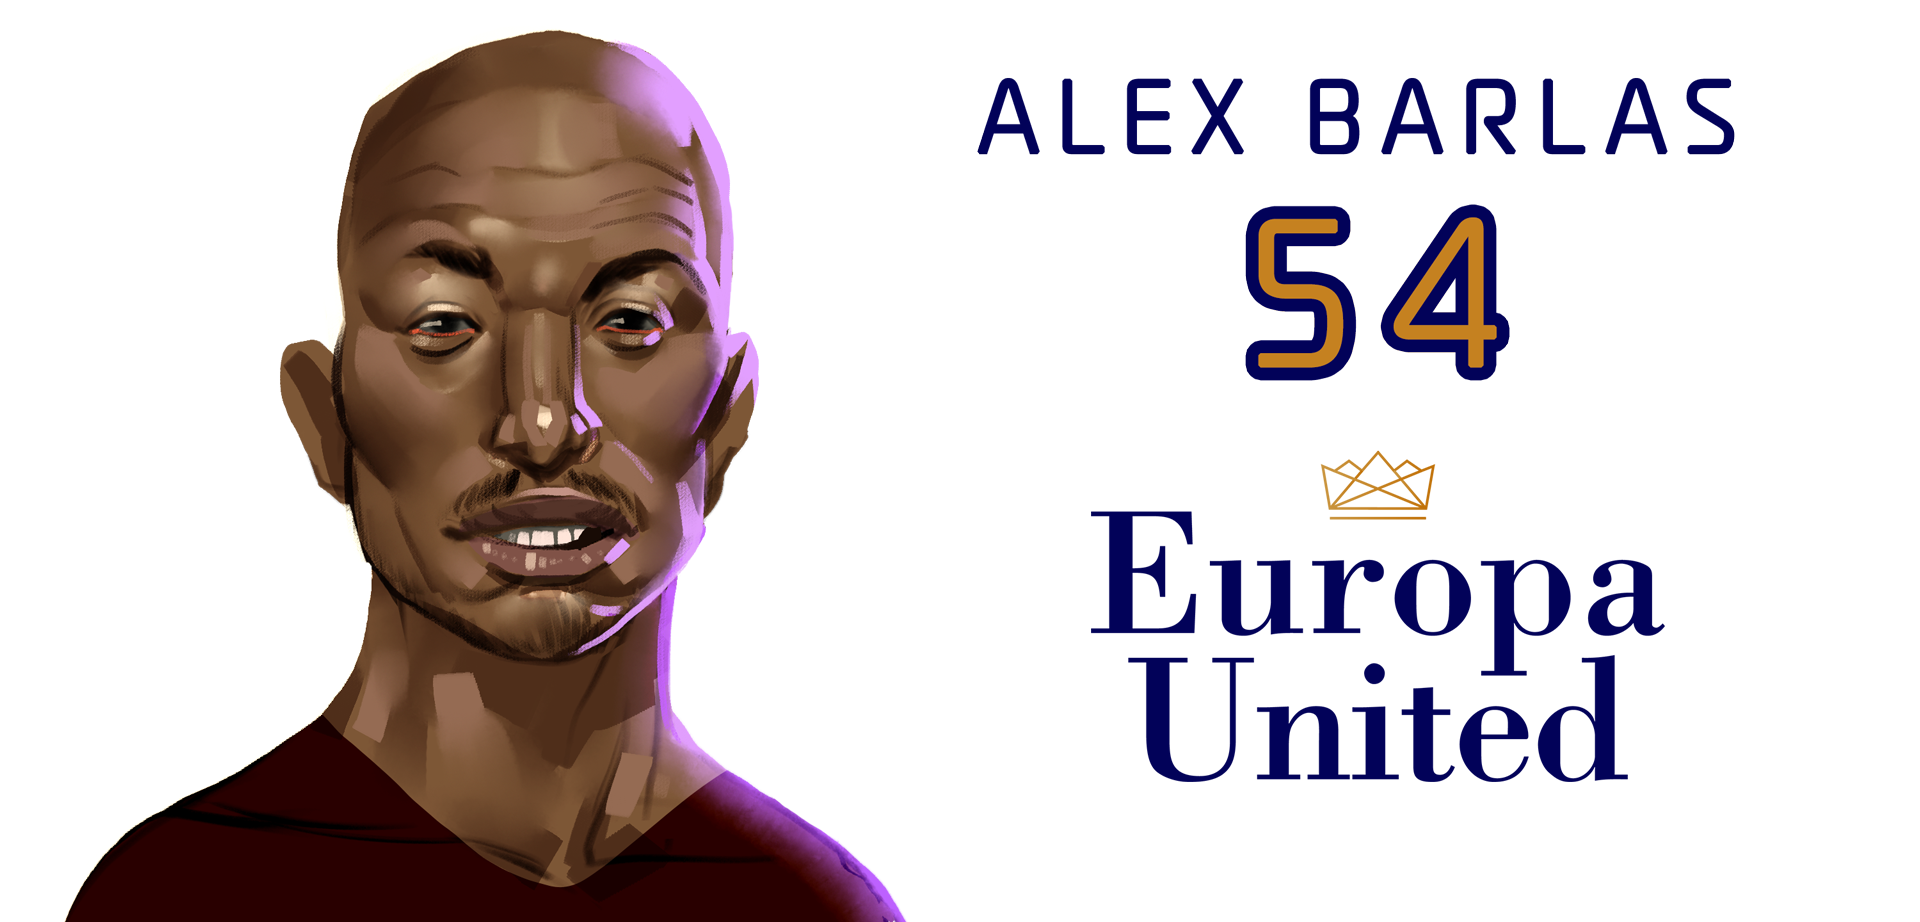 Alex Barlas, 21 year old United Forward, wasBorn in Manchester Uk and arrived in myear 245.